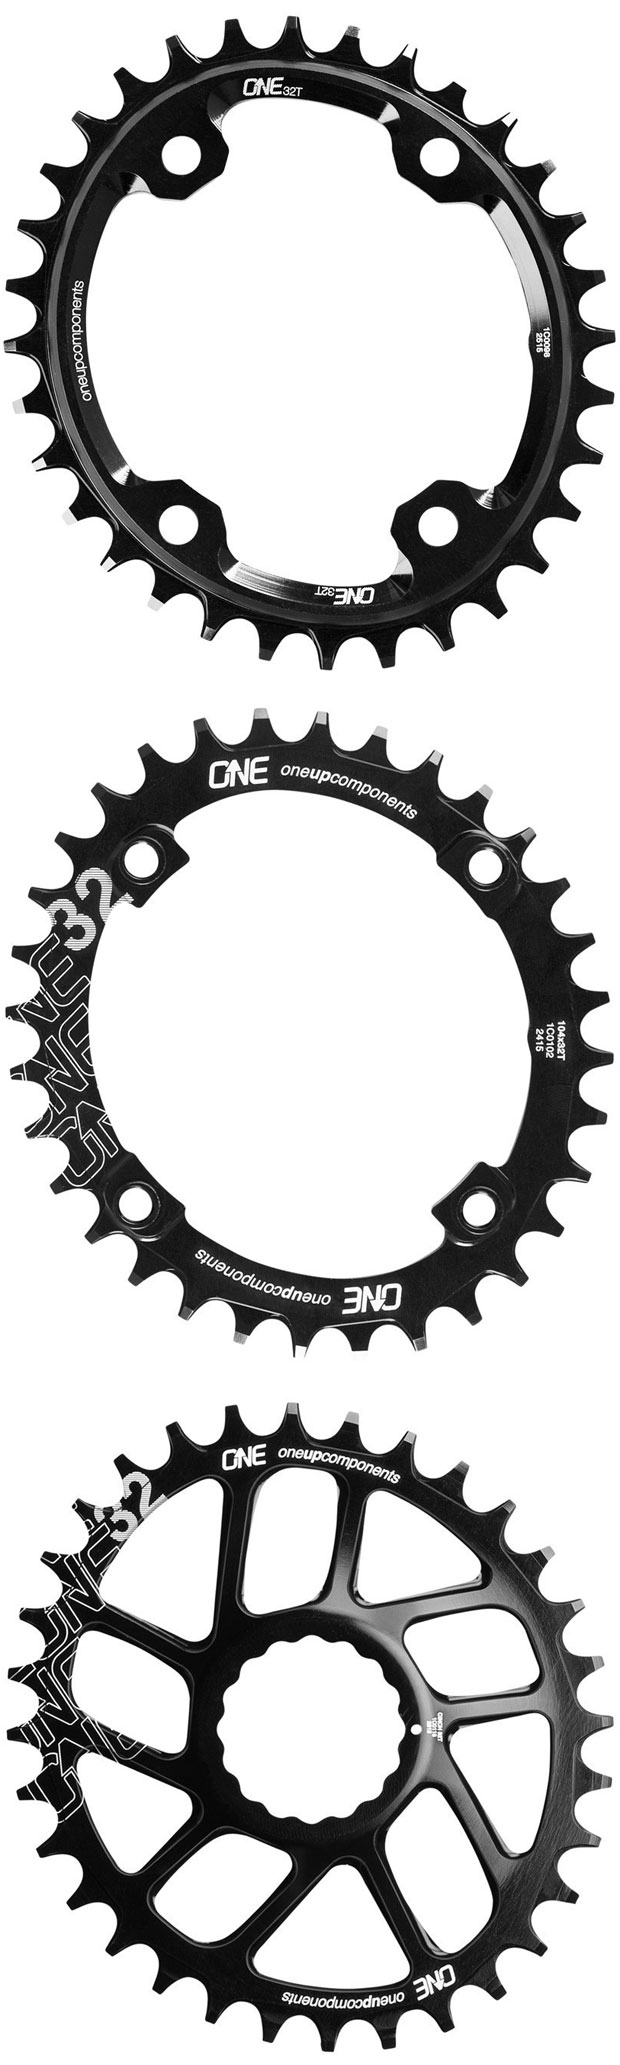 Traction Rings, la nueva gama de platos ovales con perfil 'Narrow-Wide' de OneUp Components